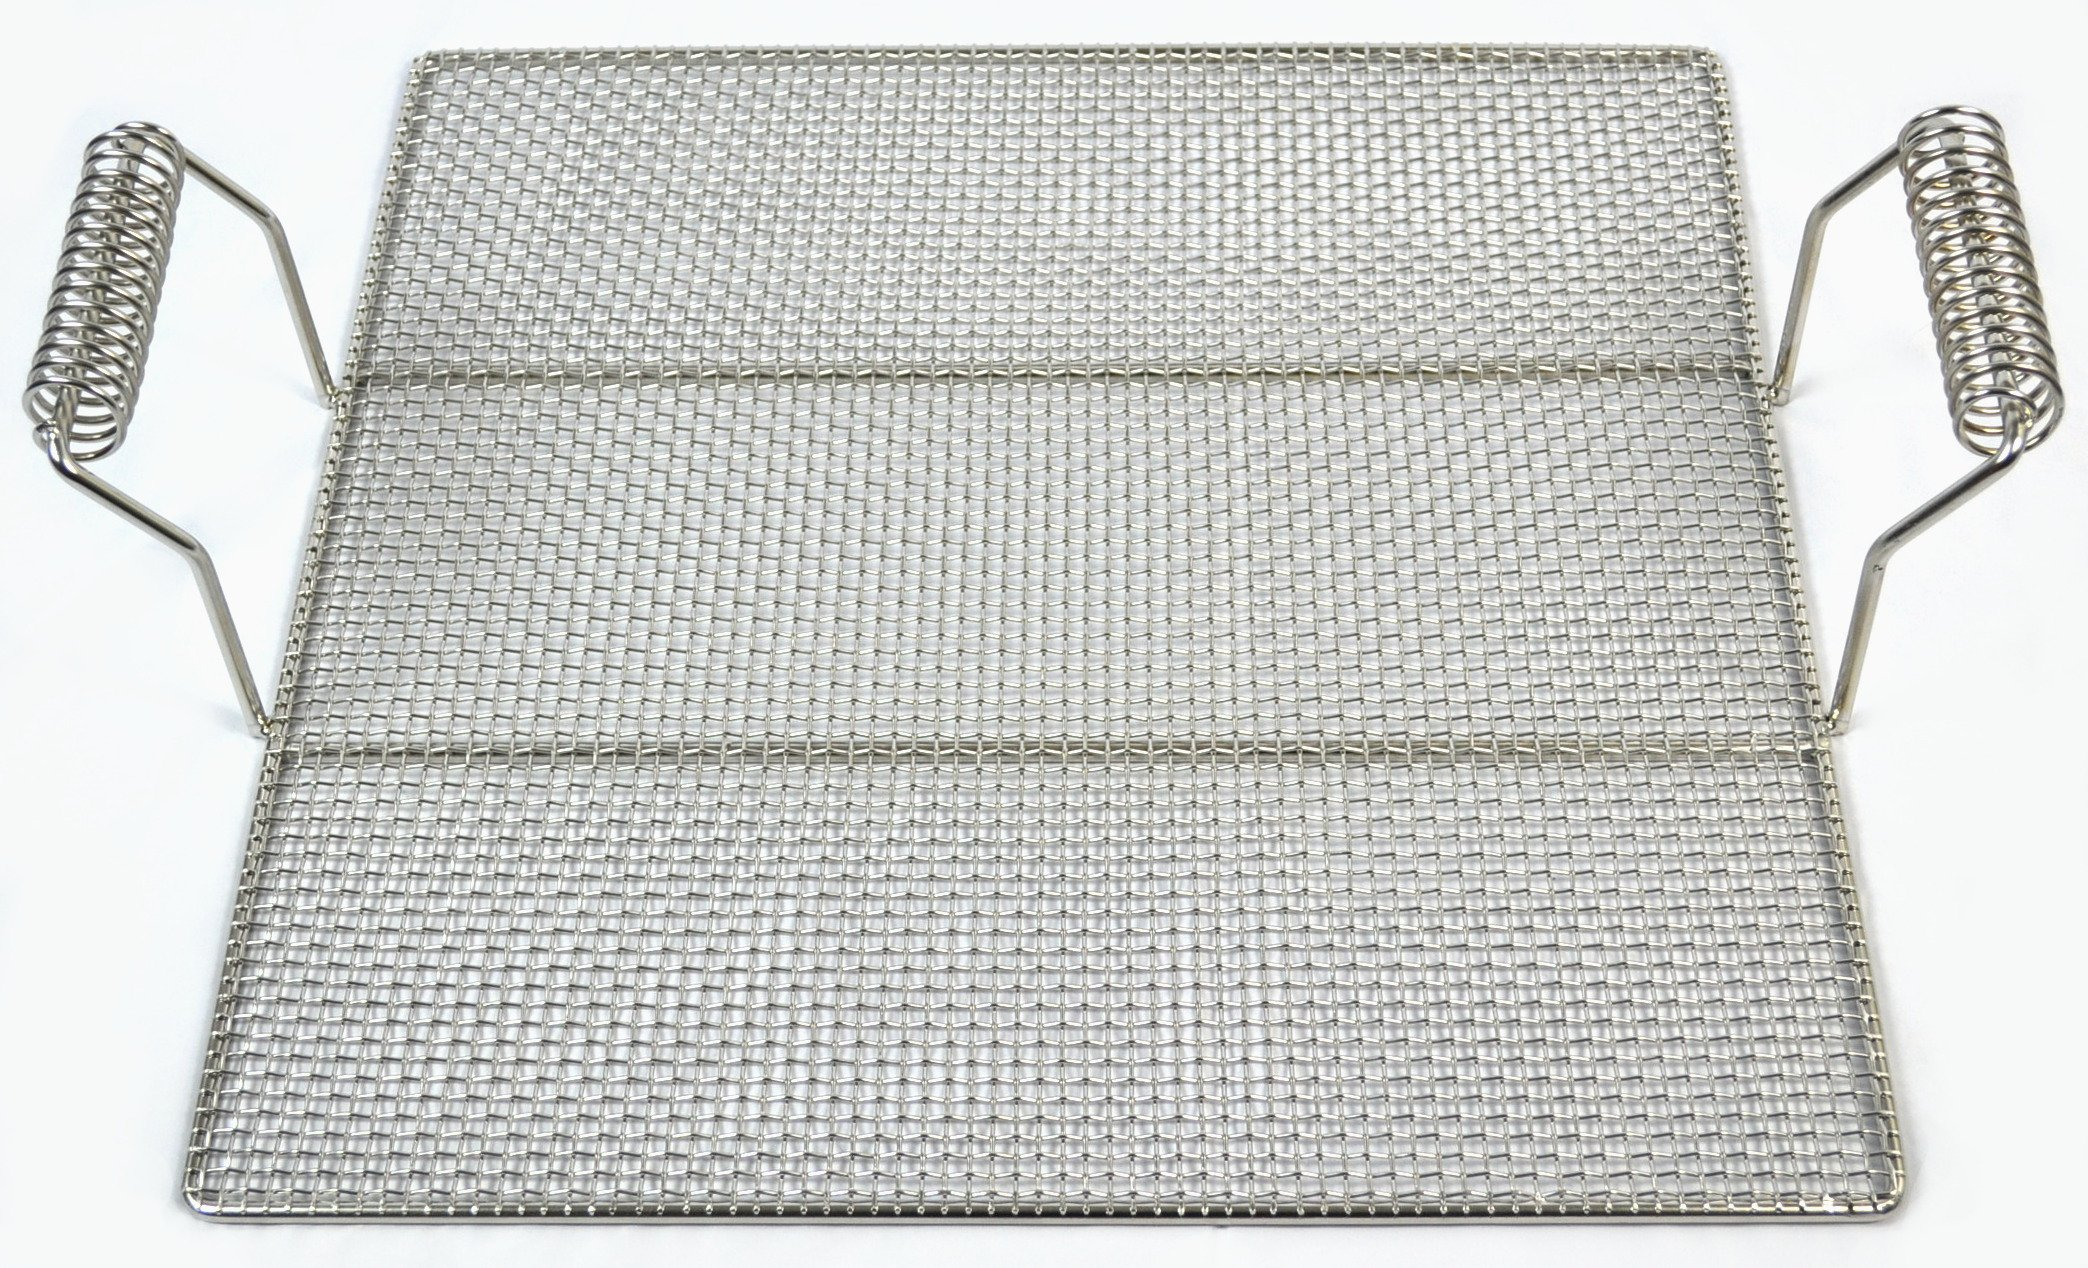 Pitco Stainless Steel Donut Screen with Handles, 19'' x 19'' (2)